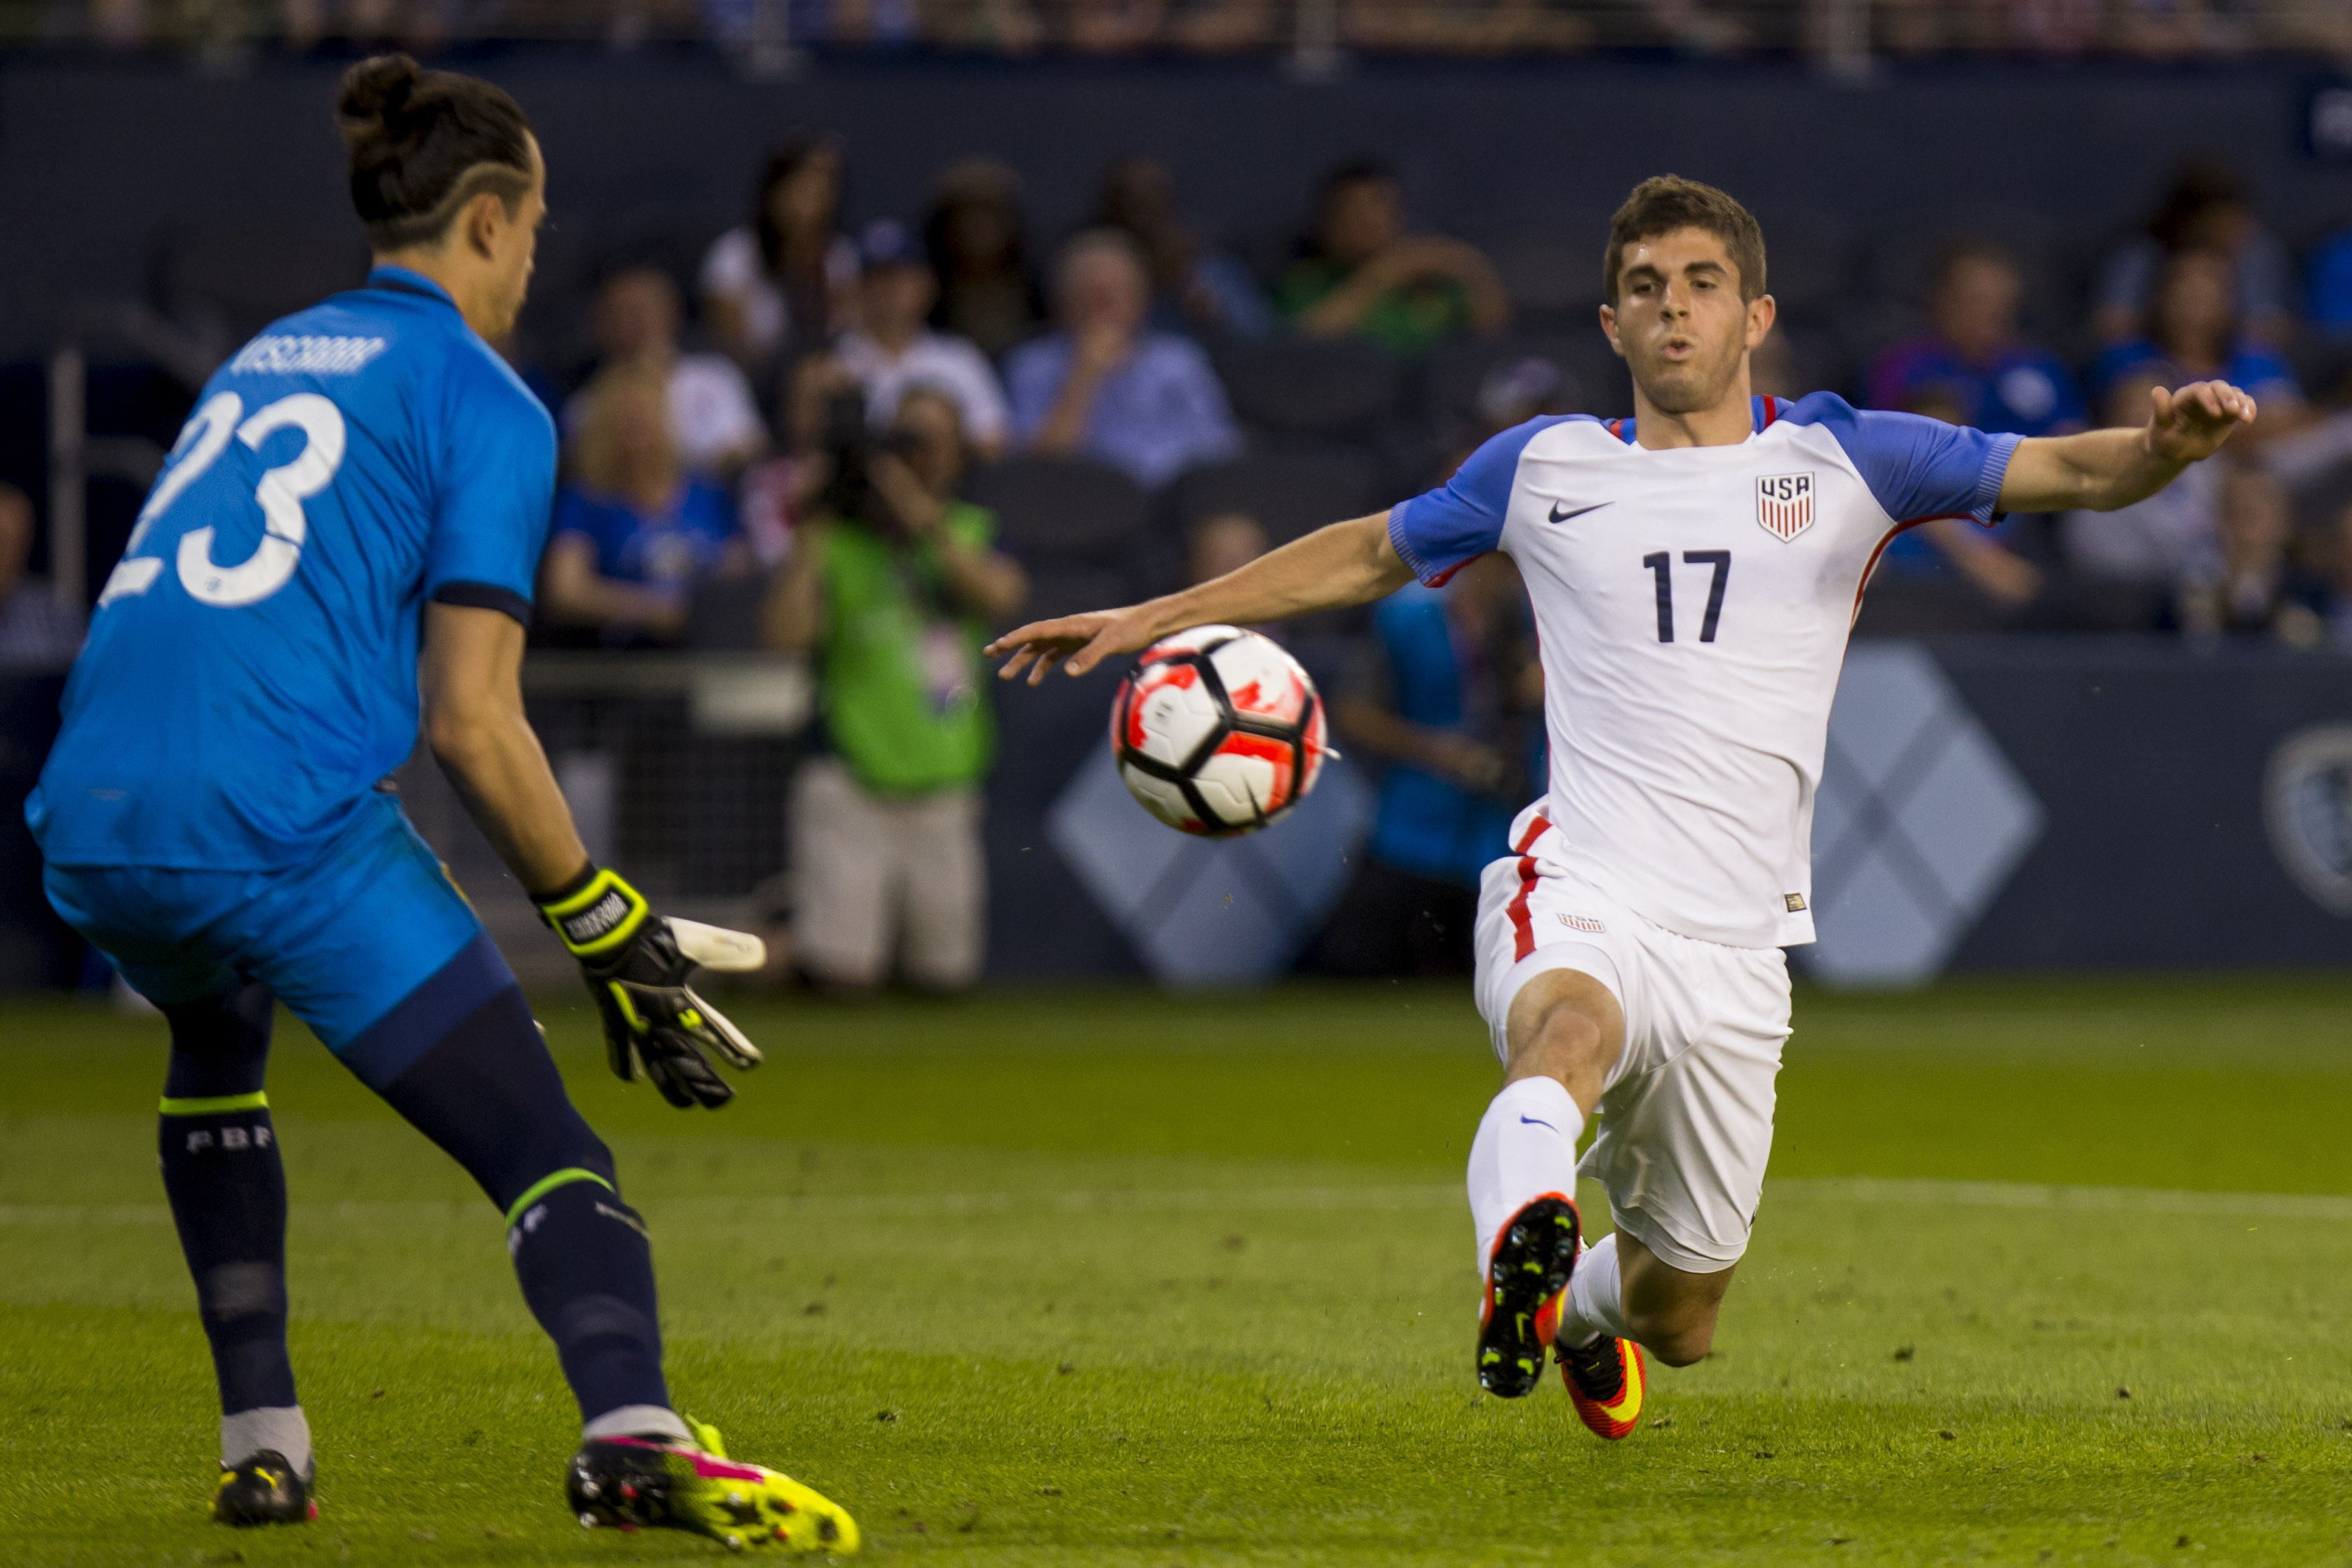 KANSAS CITY, KS - MAY 28: Christian Pulisic #17 of USA attempts to chip a pass past Guillermo Viscarra #23 of Bolivia late in the second half of an international friendly match between Bolivia and the United States on May 28, 2016 at Children's Mercy Park in Kansas City, Kansas.  (Photo by Kyle Rivas/Getty Images)